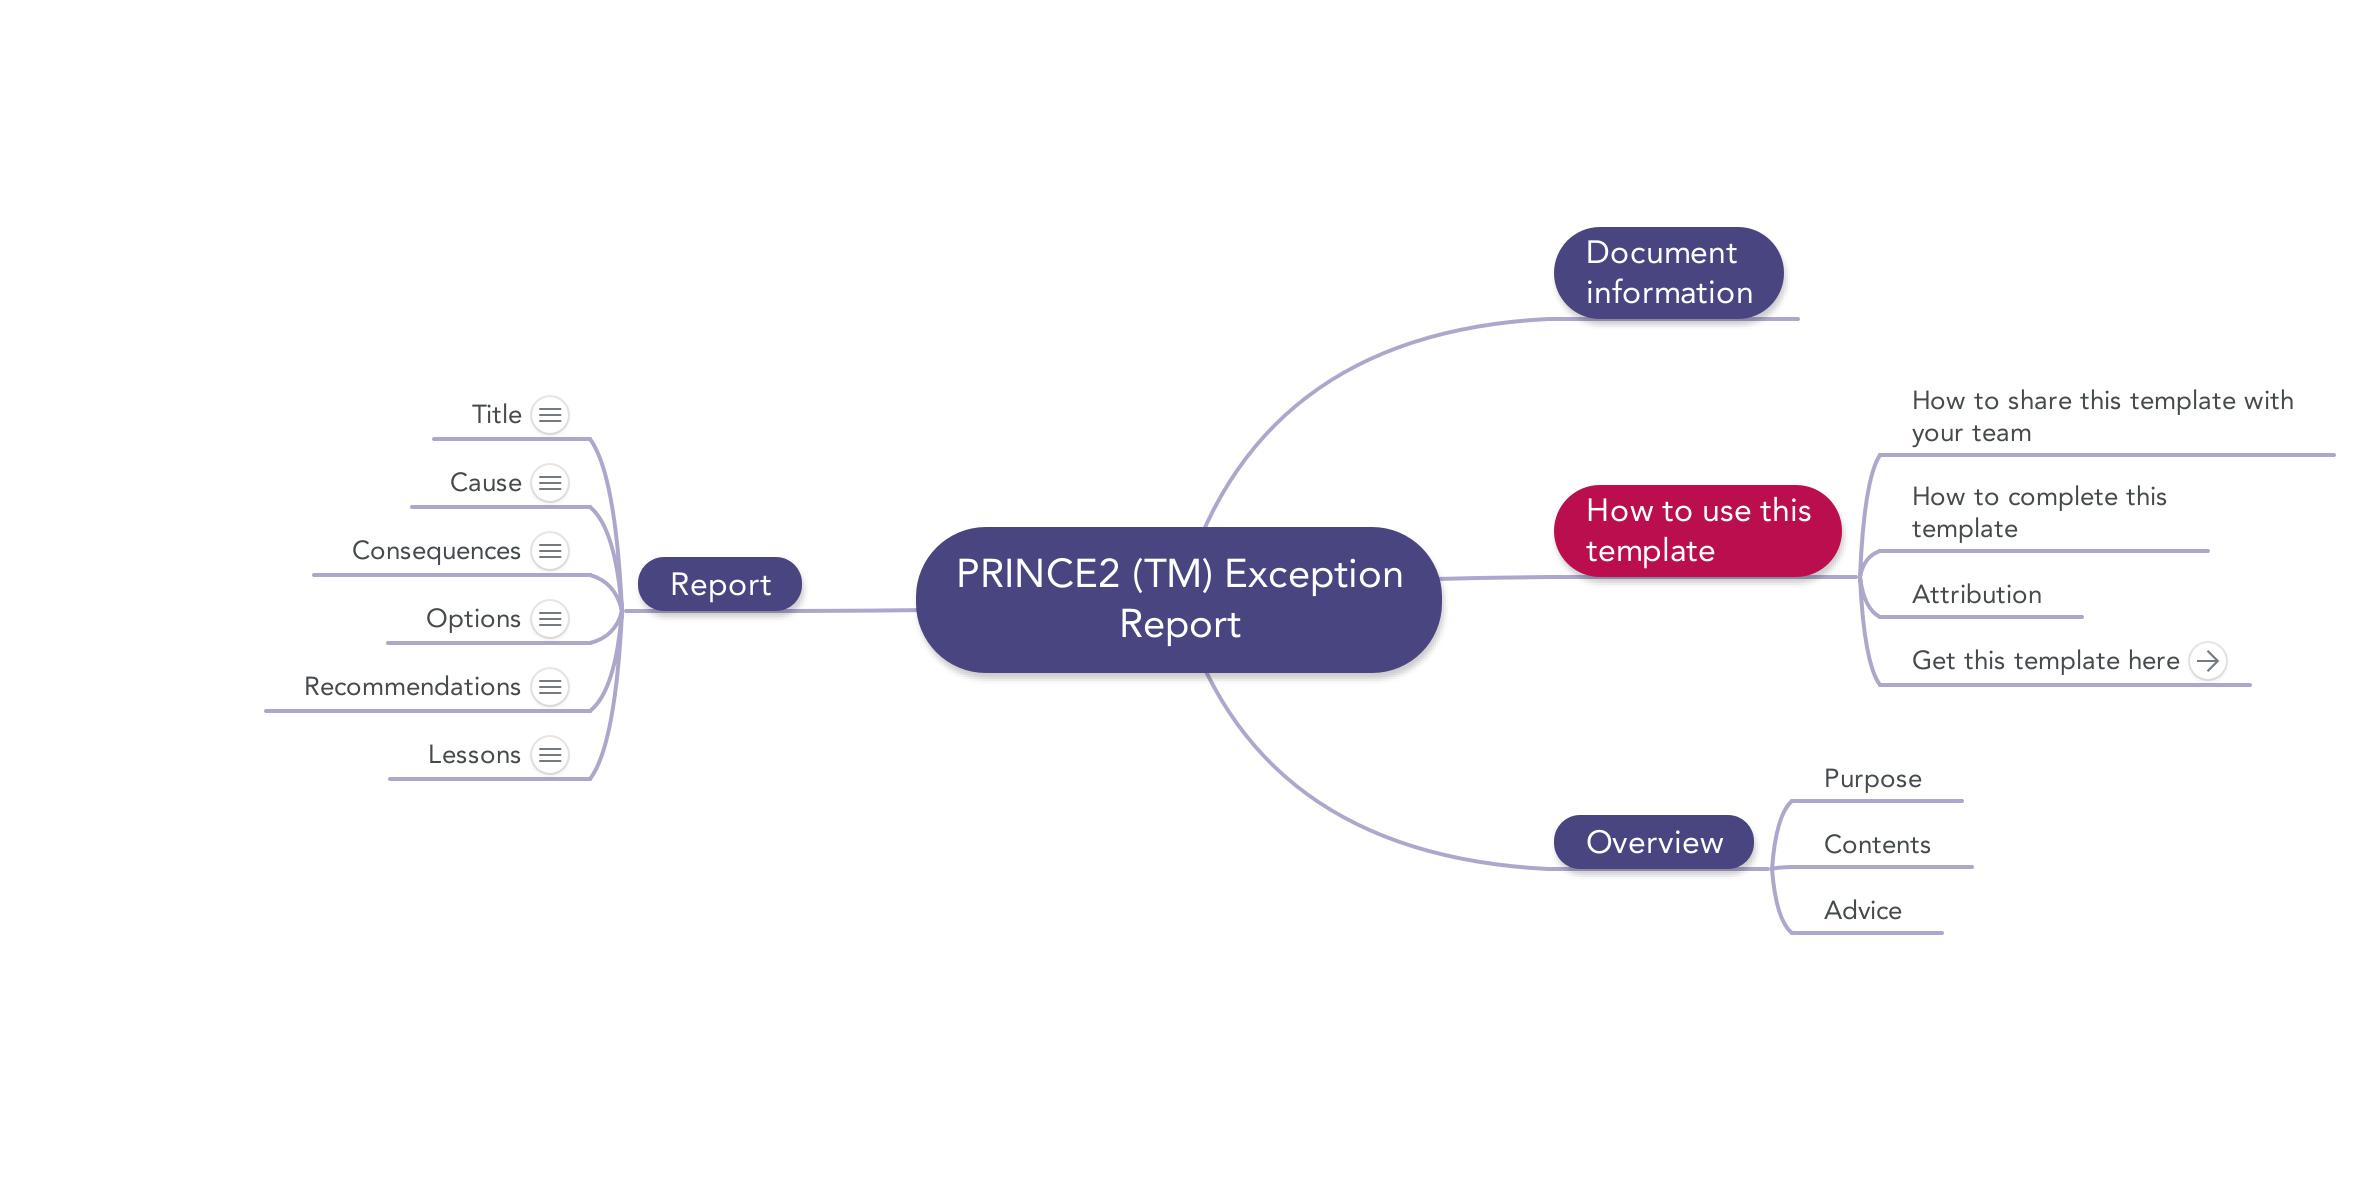 ... image of prince2 mindmap Highlight Report template